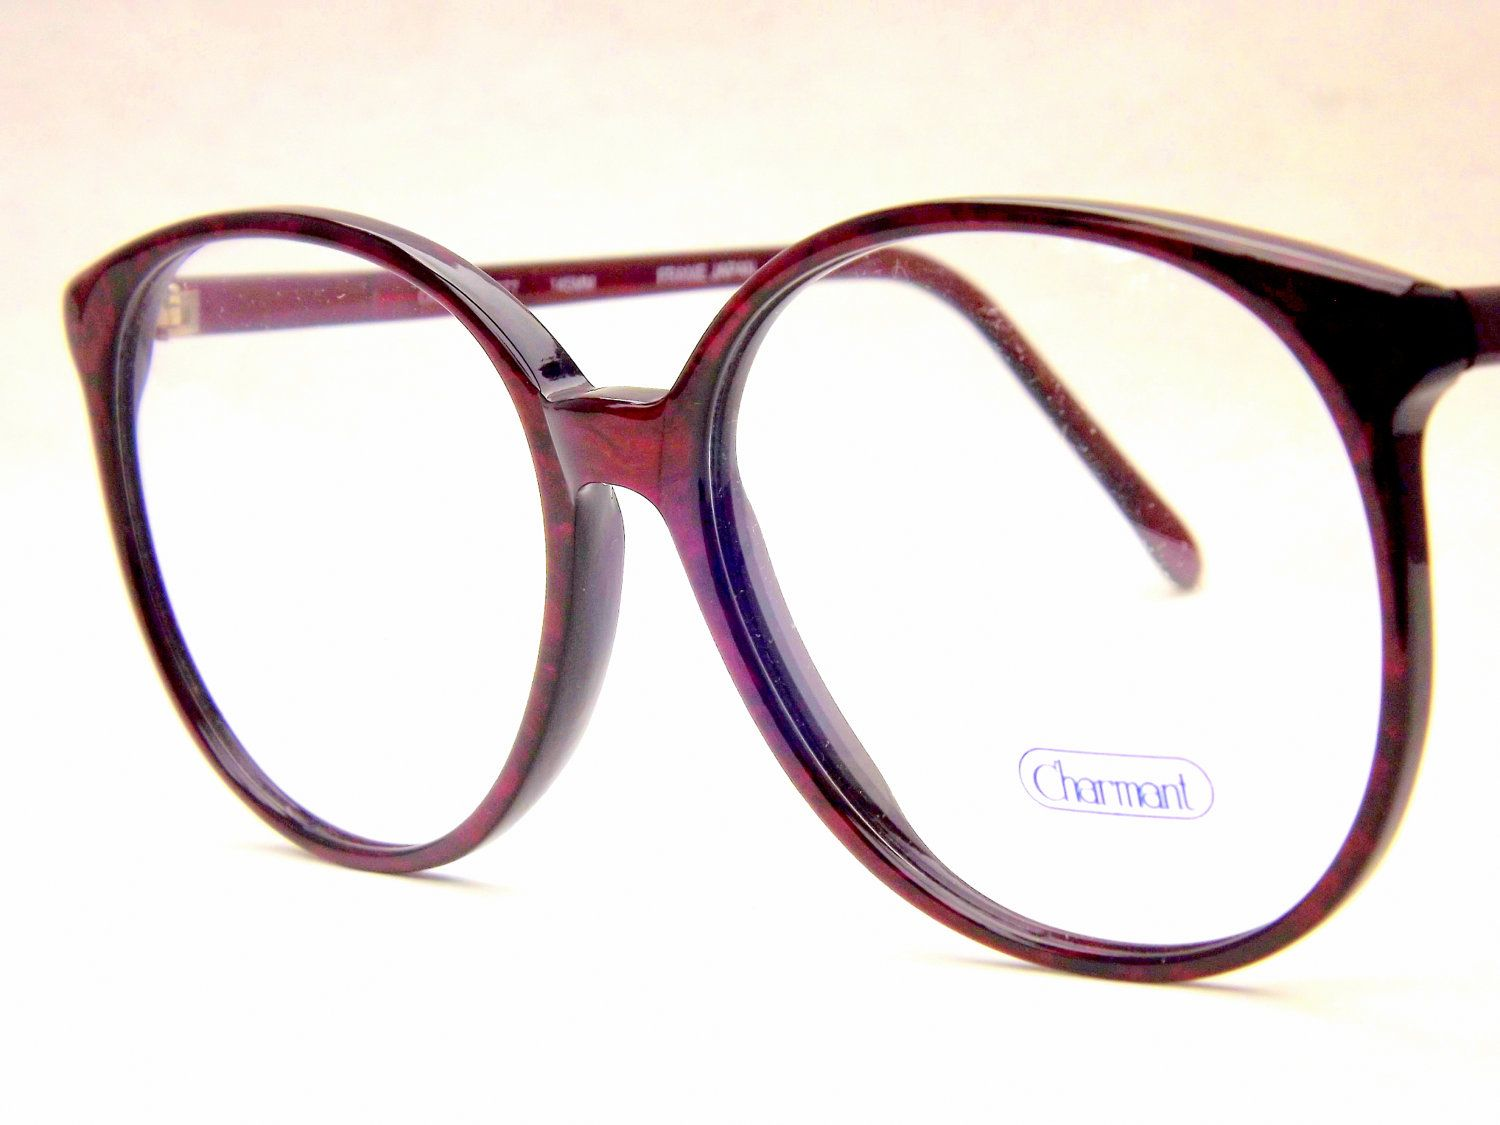 8efc97c581 Big Preppy Burgundy Wine Eyeglasses - Vintage Eyewear - Womens Round 80s  Vintage New Old Stock Frames.  45.00